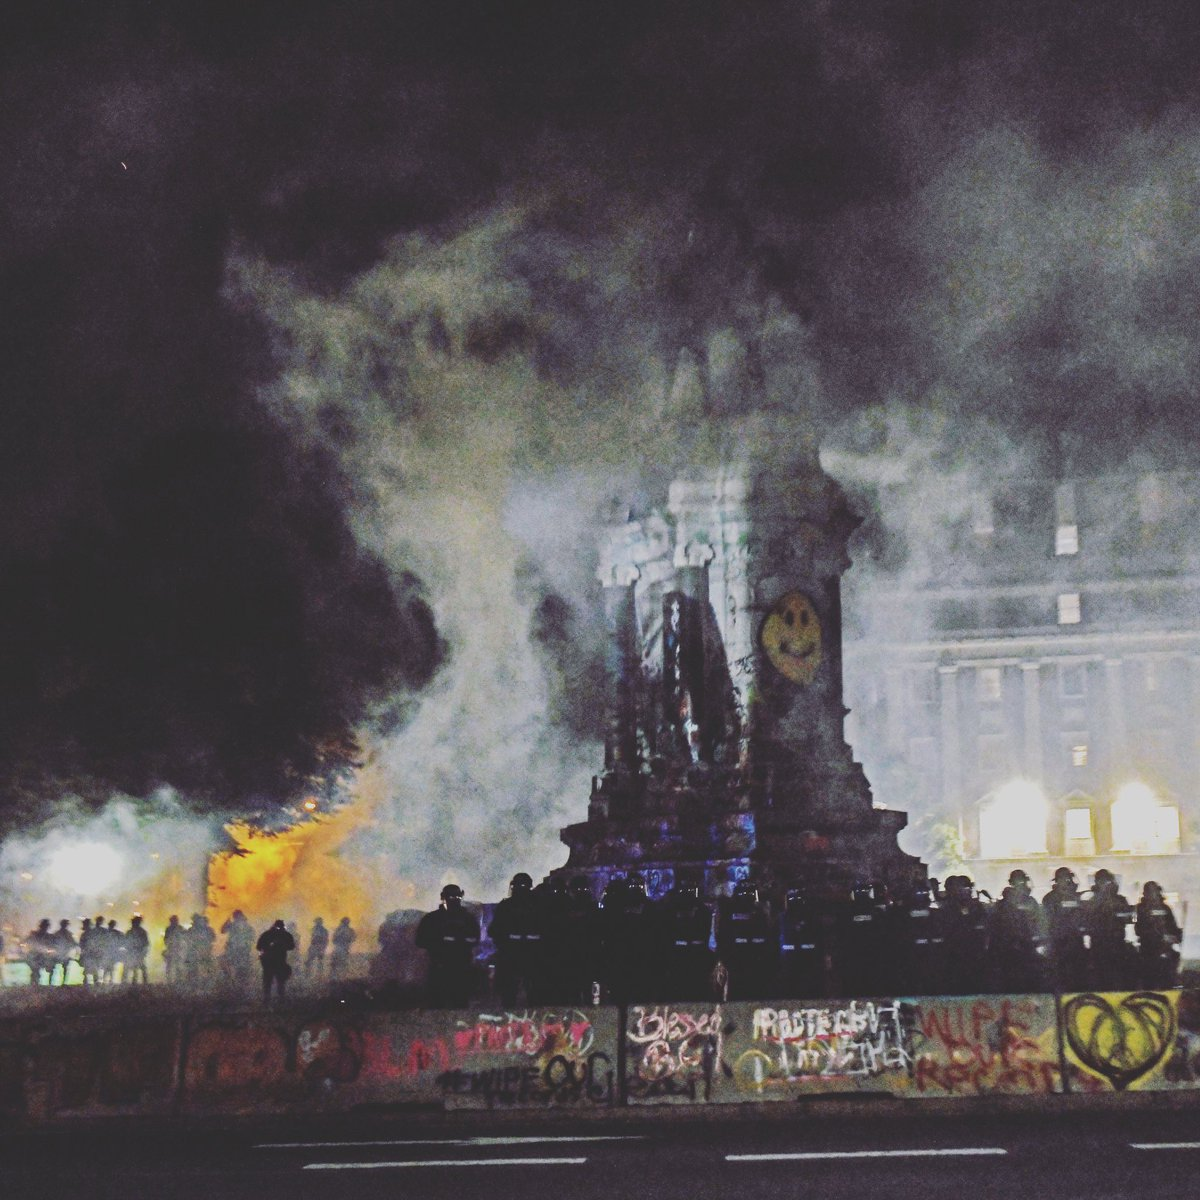 The Robert E. Lee Monument engulfed in tear gas. The Virginia State Police declared as unlawful assembly at the monument at approximately 10:15 Friday evening. The police then used tear gas to disperse the crowd. Photo by Scott Elmquist.